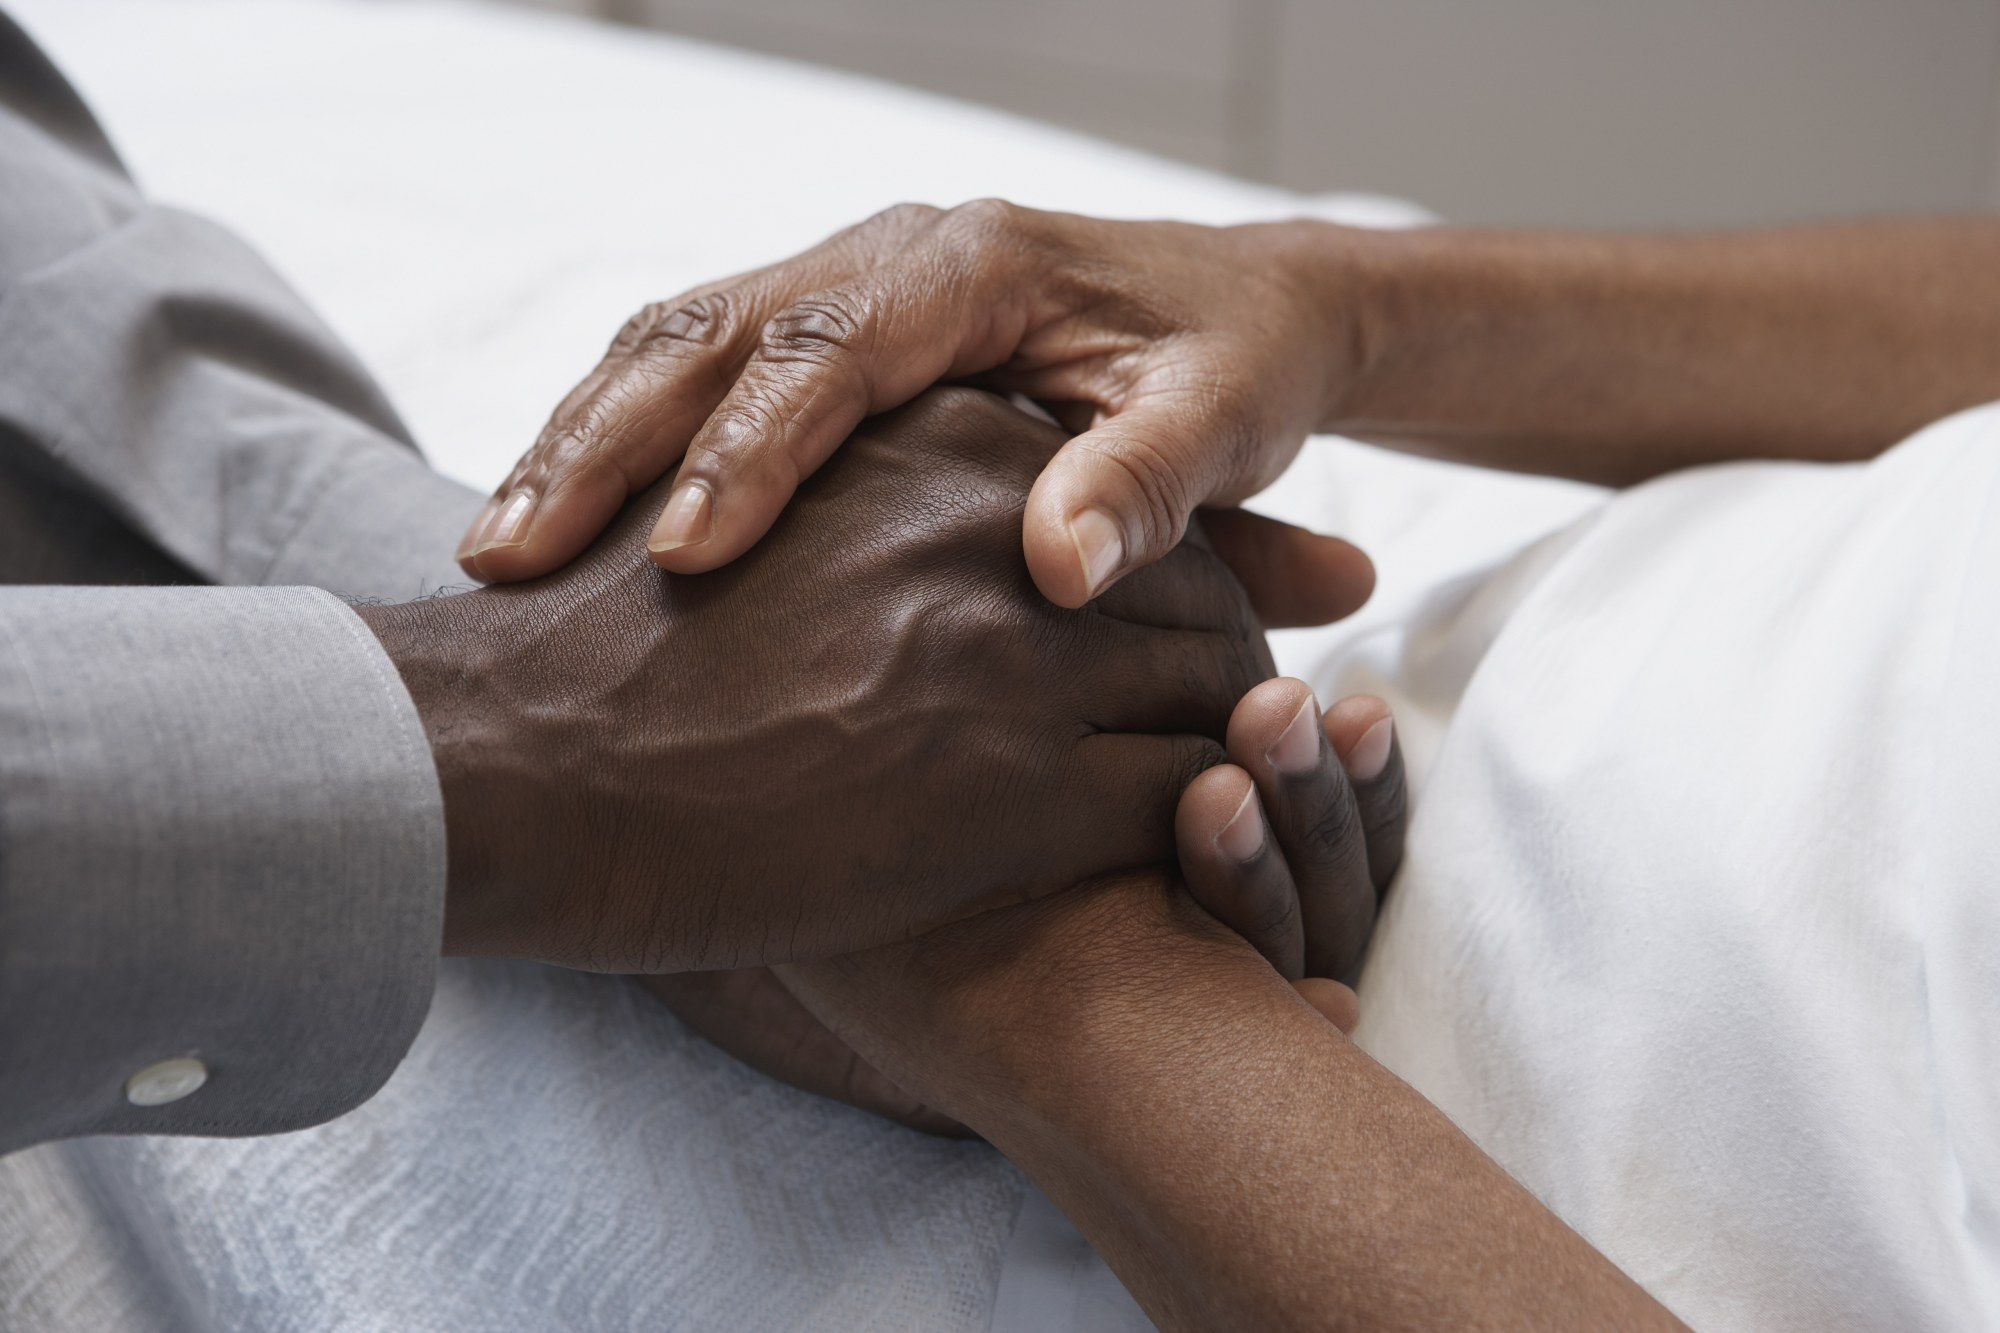 How to care for yourself while caring for someone with Alzheimer's